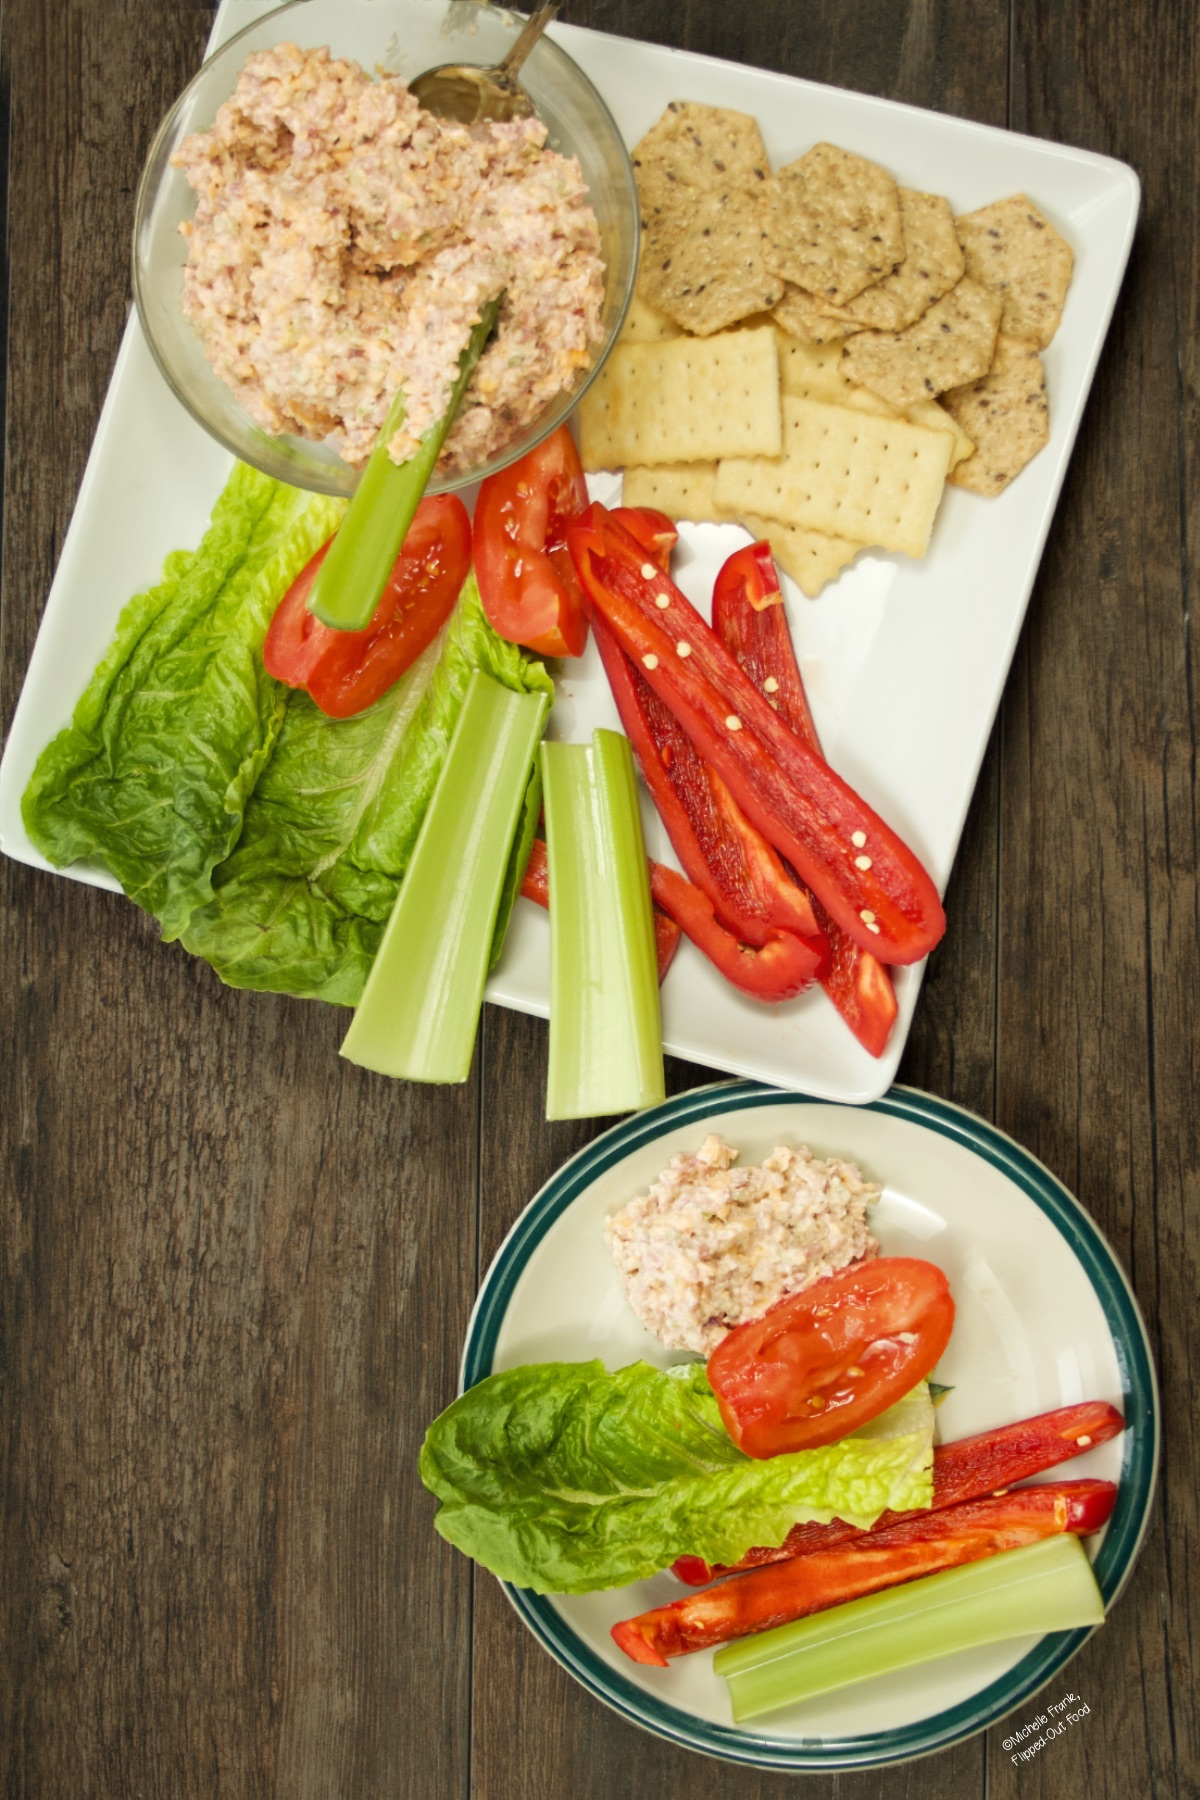 Keto Ham Salad Spread in a serving bowl set onto a white serving platter. The platter is full of crackers, sliced vegetables, and lettuce leaves. A small party plate loaded up with vegetables, lettuce, and the ham spread sits next to the platter.